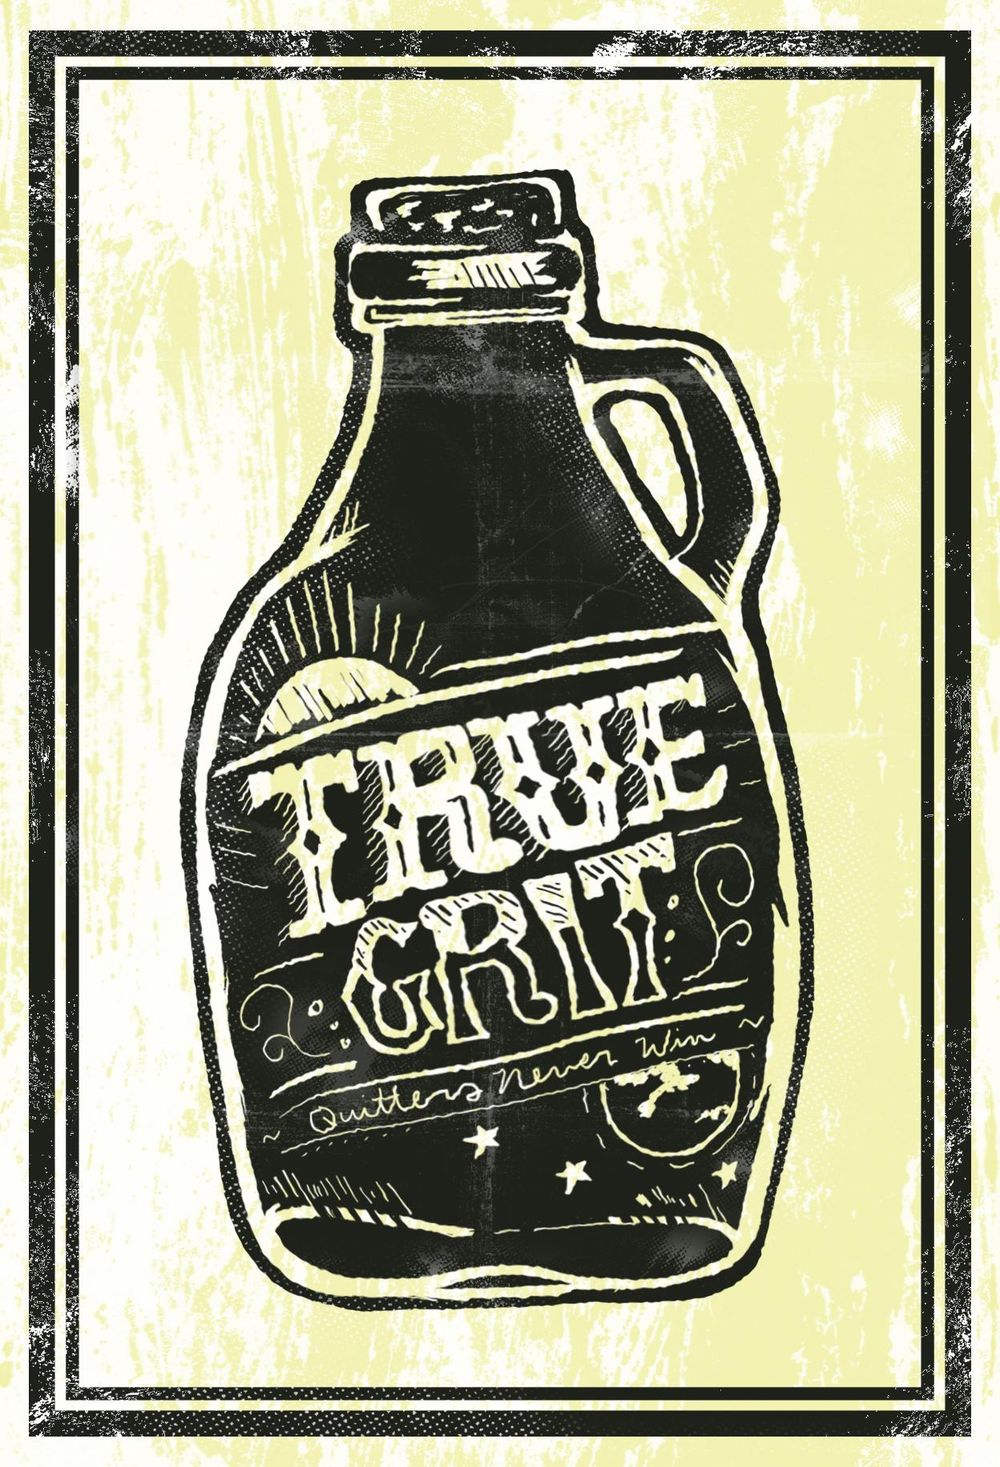 True Grit Brewery - image 2 - student project